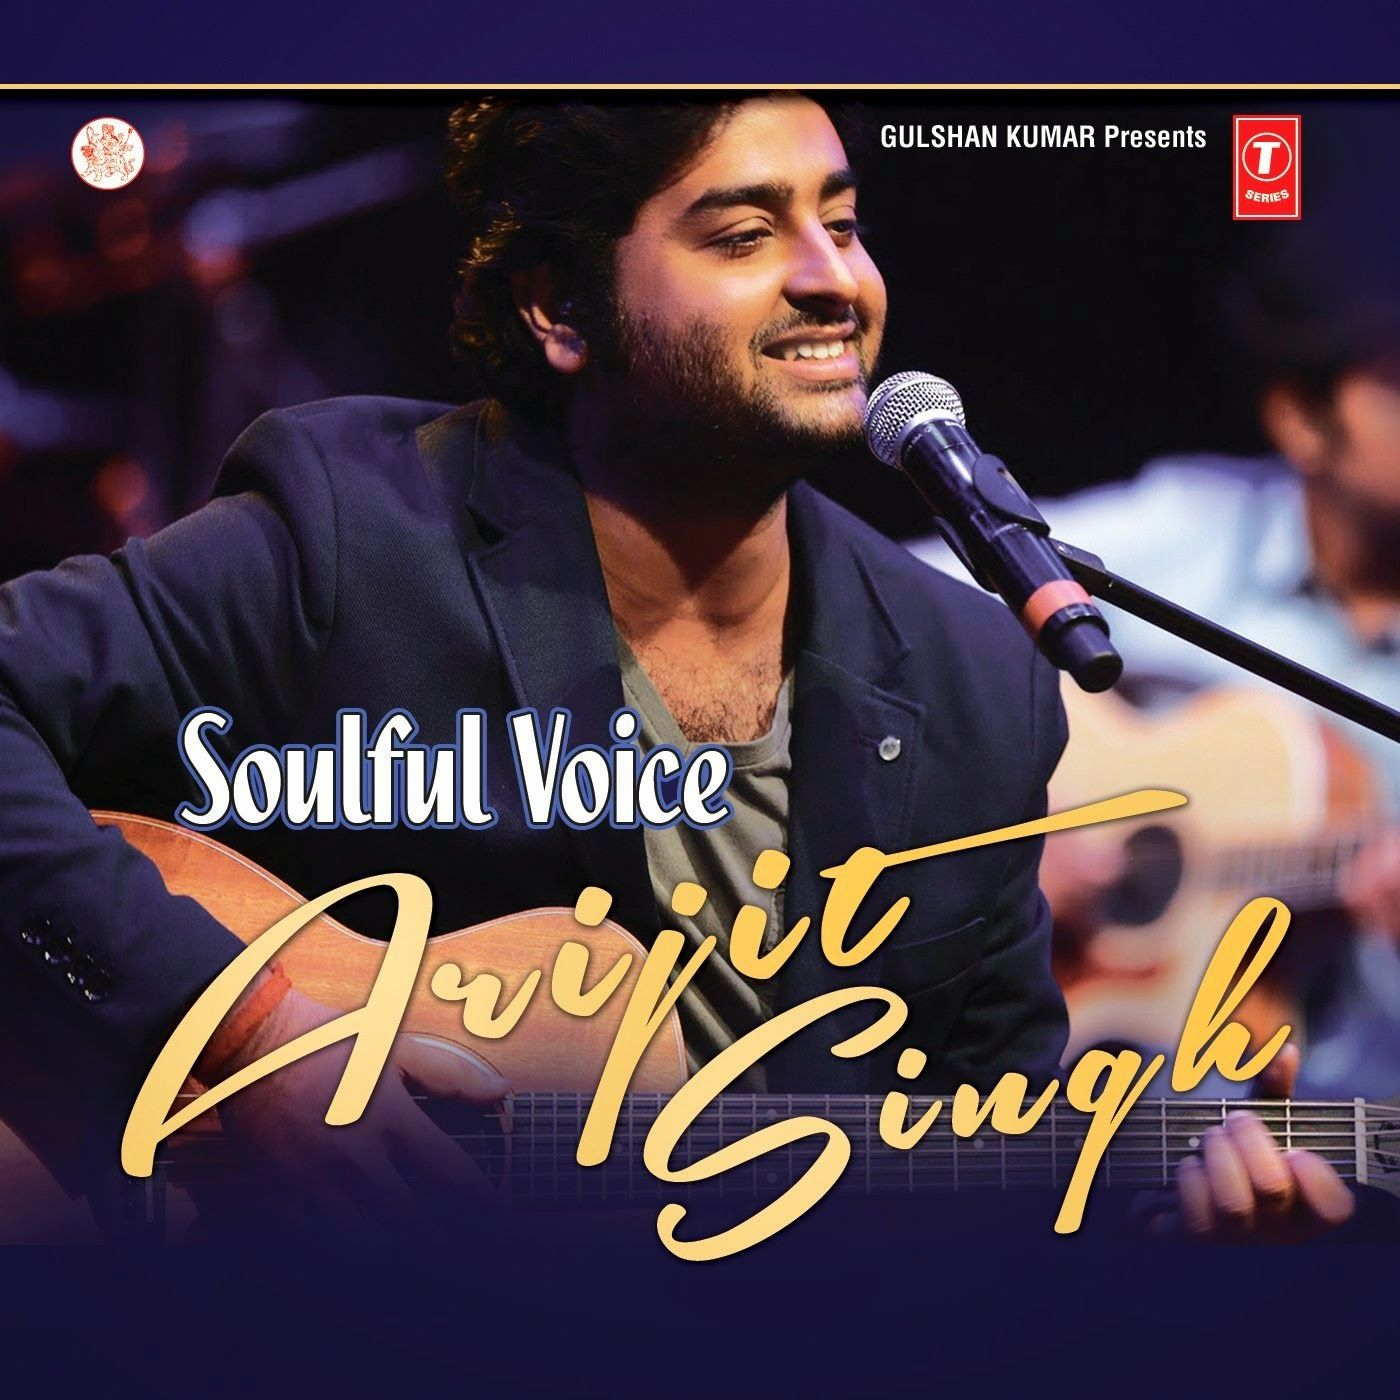 Soulful Voice Arijit Singh (2011 - 2014) 69 Hindi Mp3 Songs Collection  320kbps